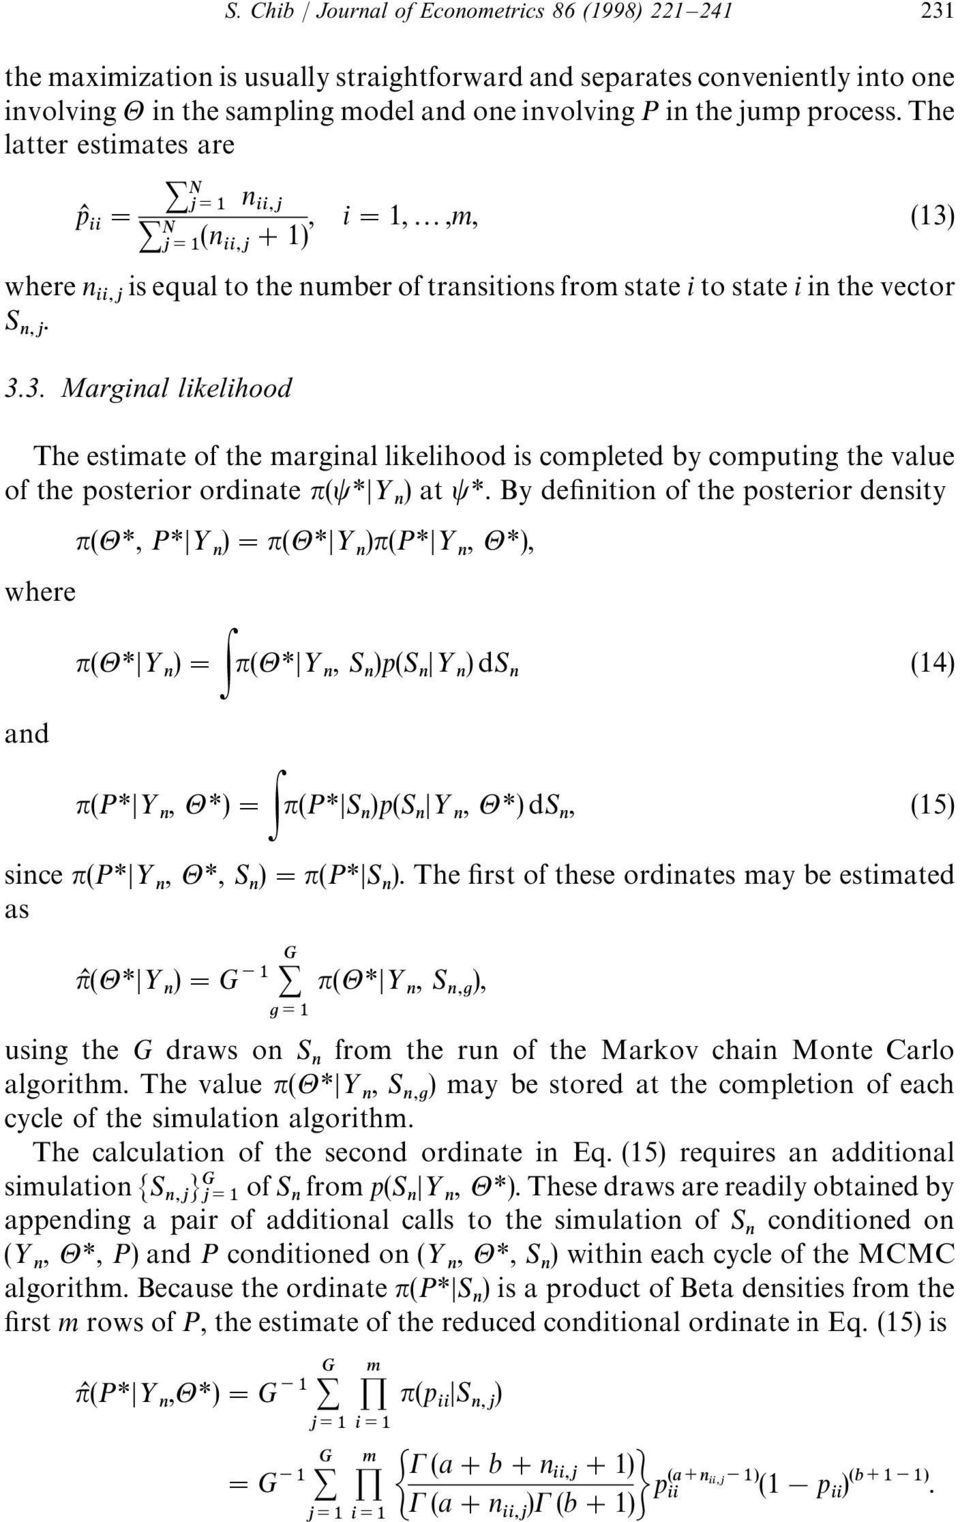 Chib / Journal of Econometrics 86 (1998) 221 241 231 The estimate of the marginal likelihood is completed by computing the value of the posterior ordinate π(ψ*½ )atψ*.